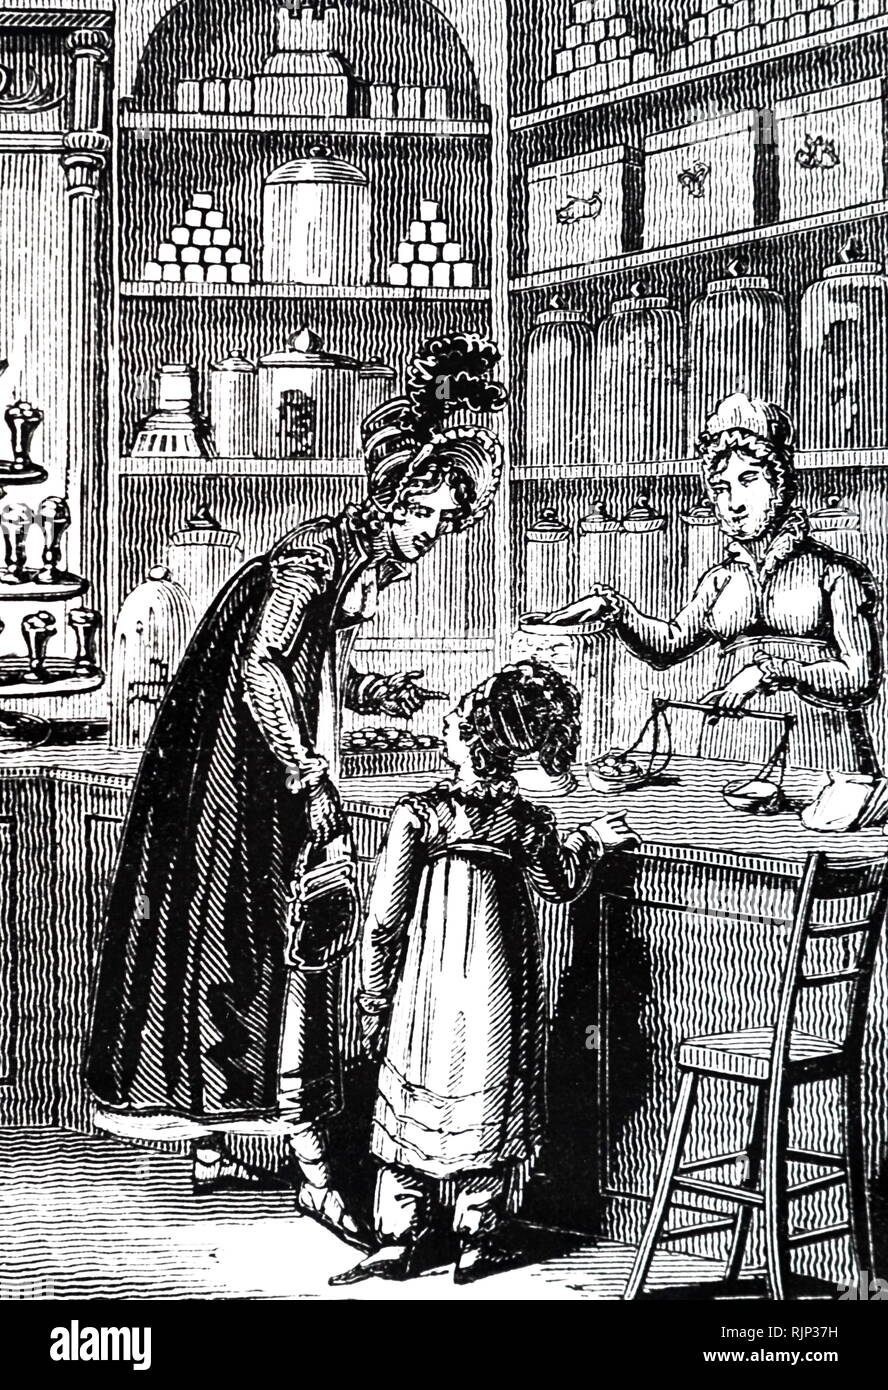 An engraving depicting a child being bought sweets in a confectioner's shop. Dated 19th century - Stock Image